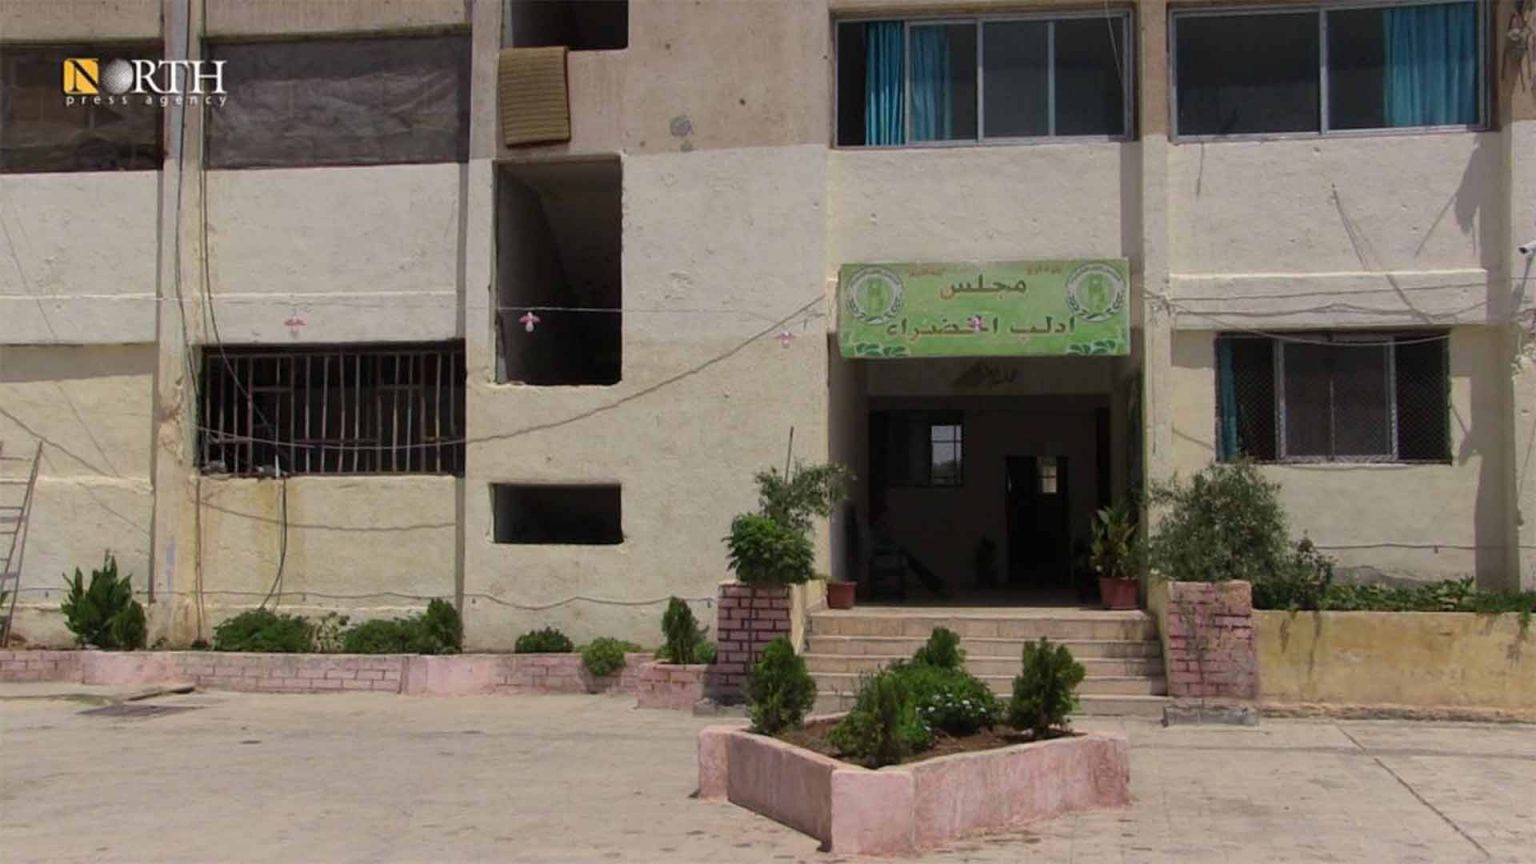 World Preoccupied with Afghanistan, Forgets Syria: Idleb Civil Council